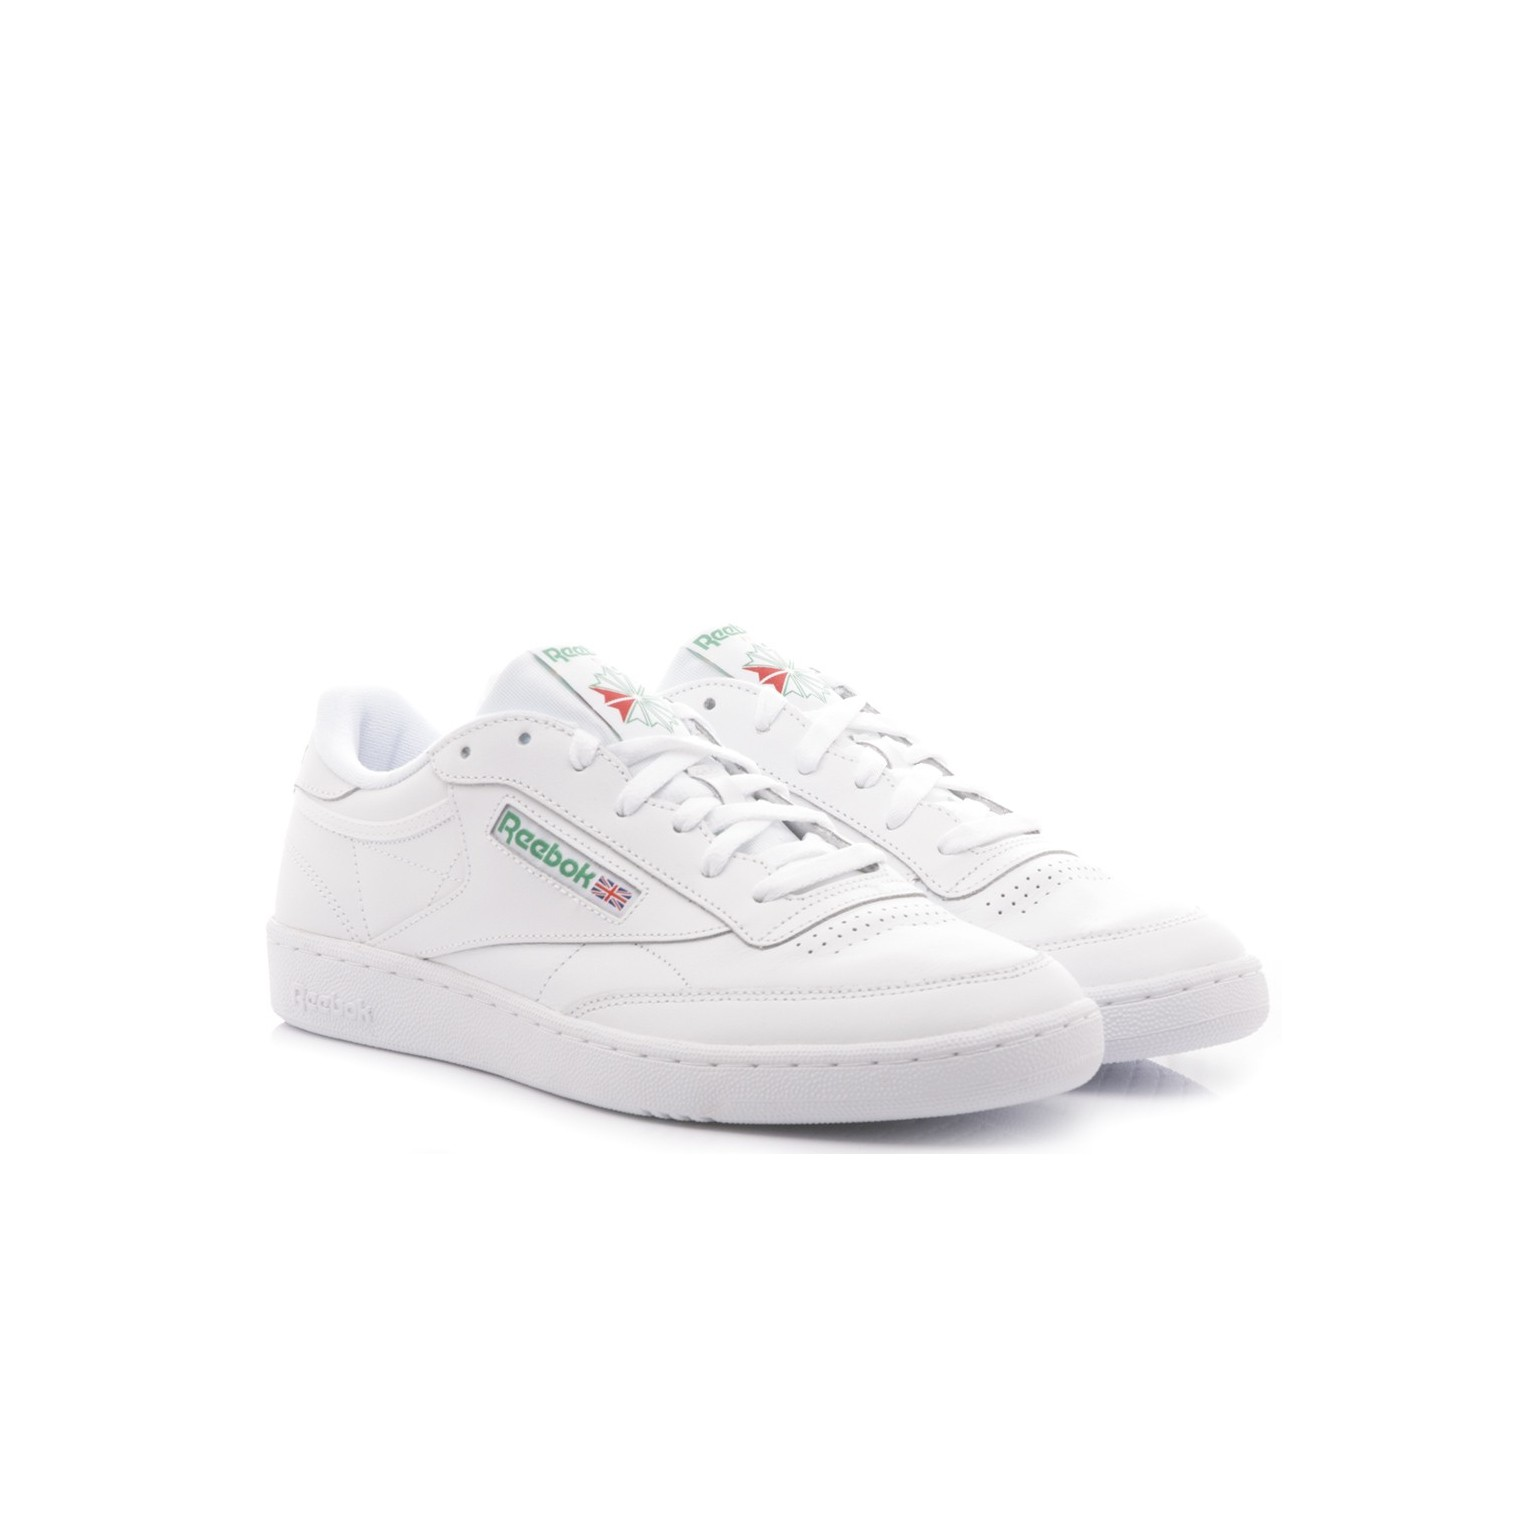 827f960231d reebok-men-s-sneakers-club-c-85-leather-white-ar0456.jpg